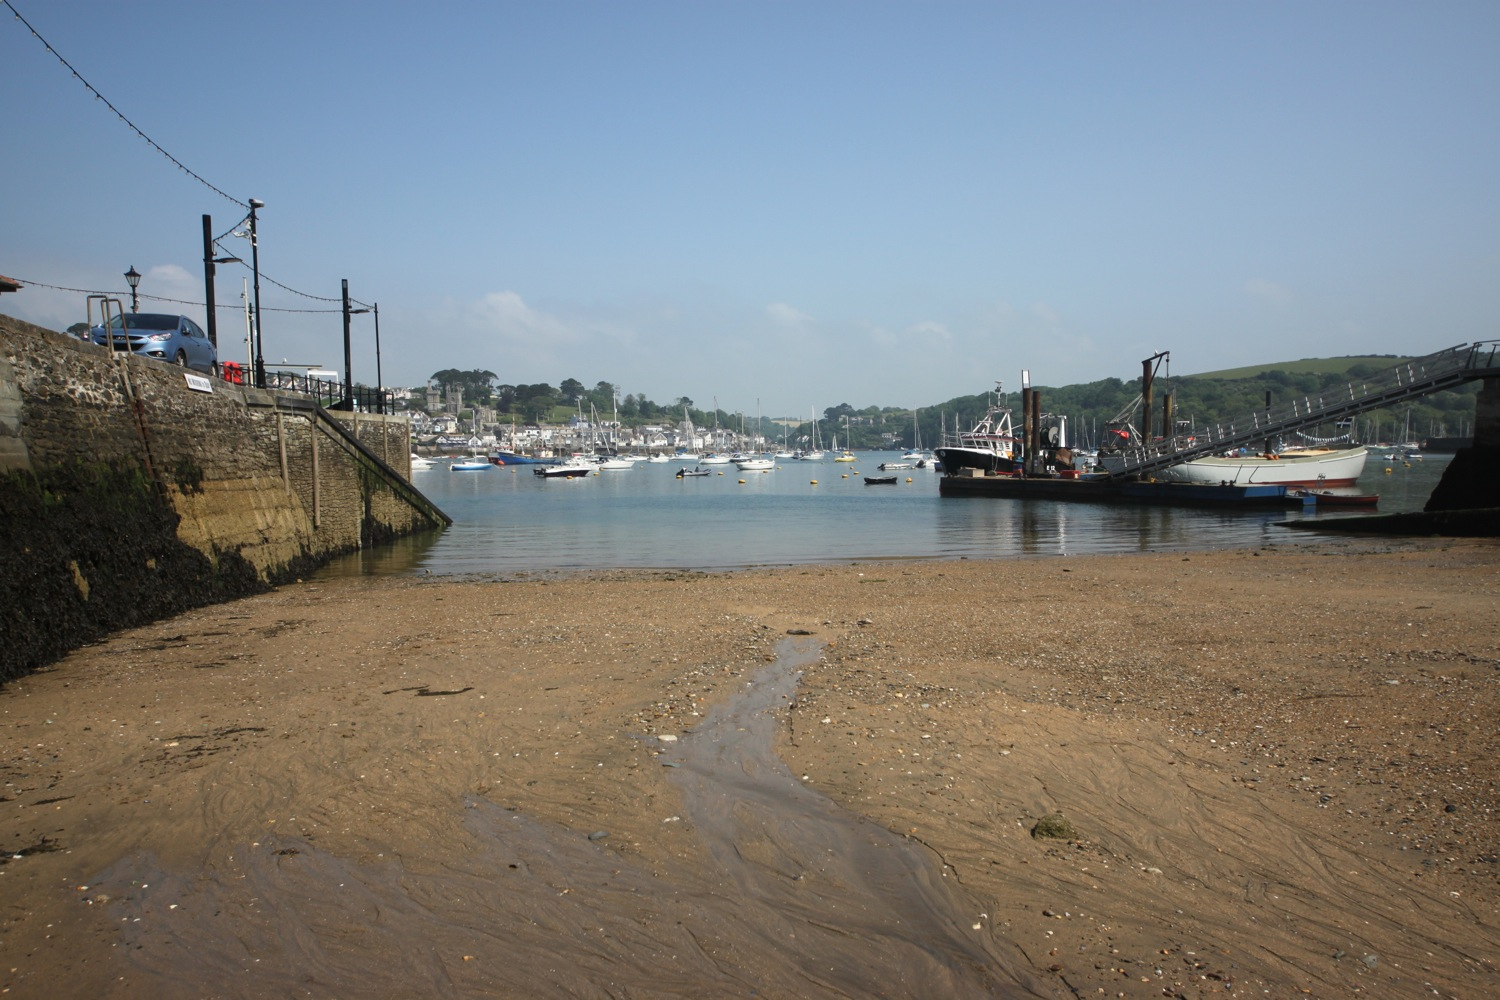 sandy beach at polruan quay